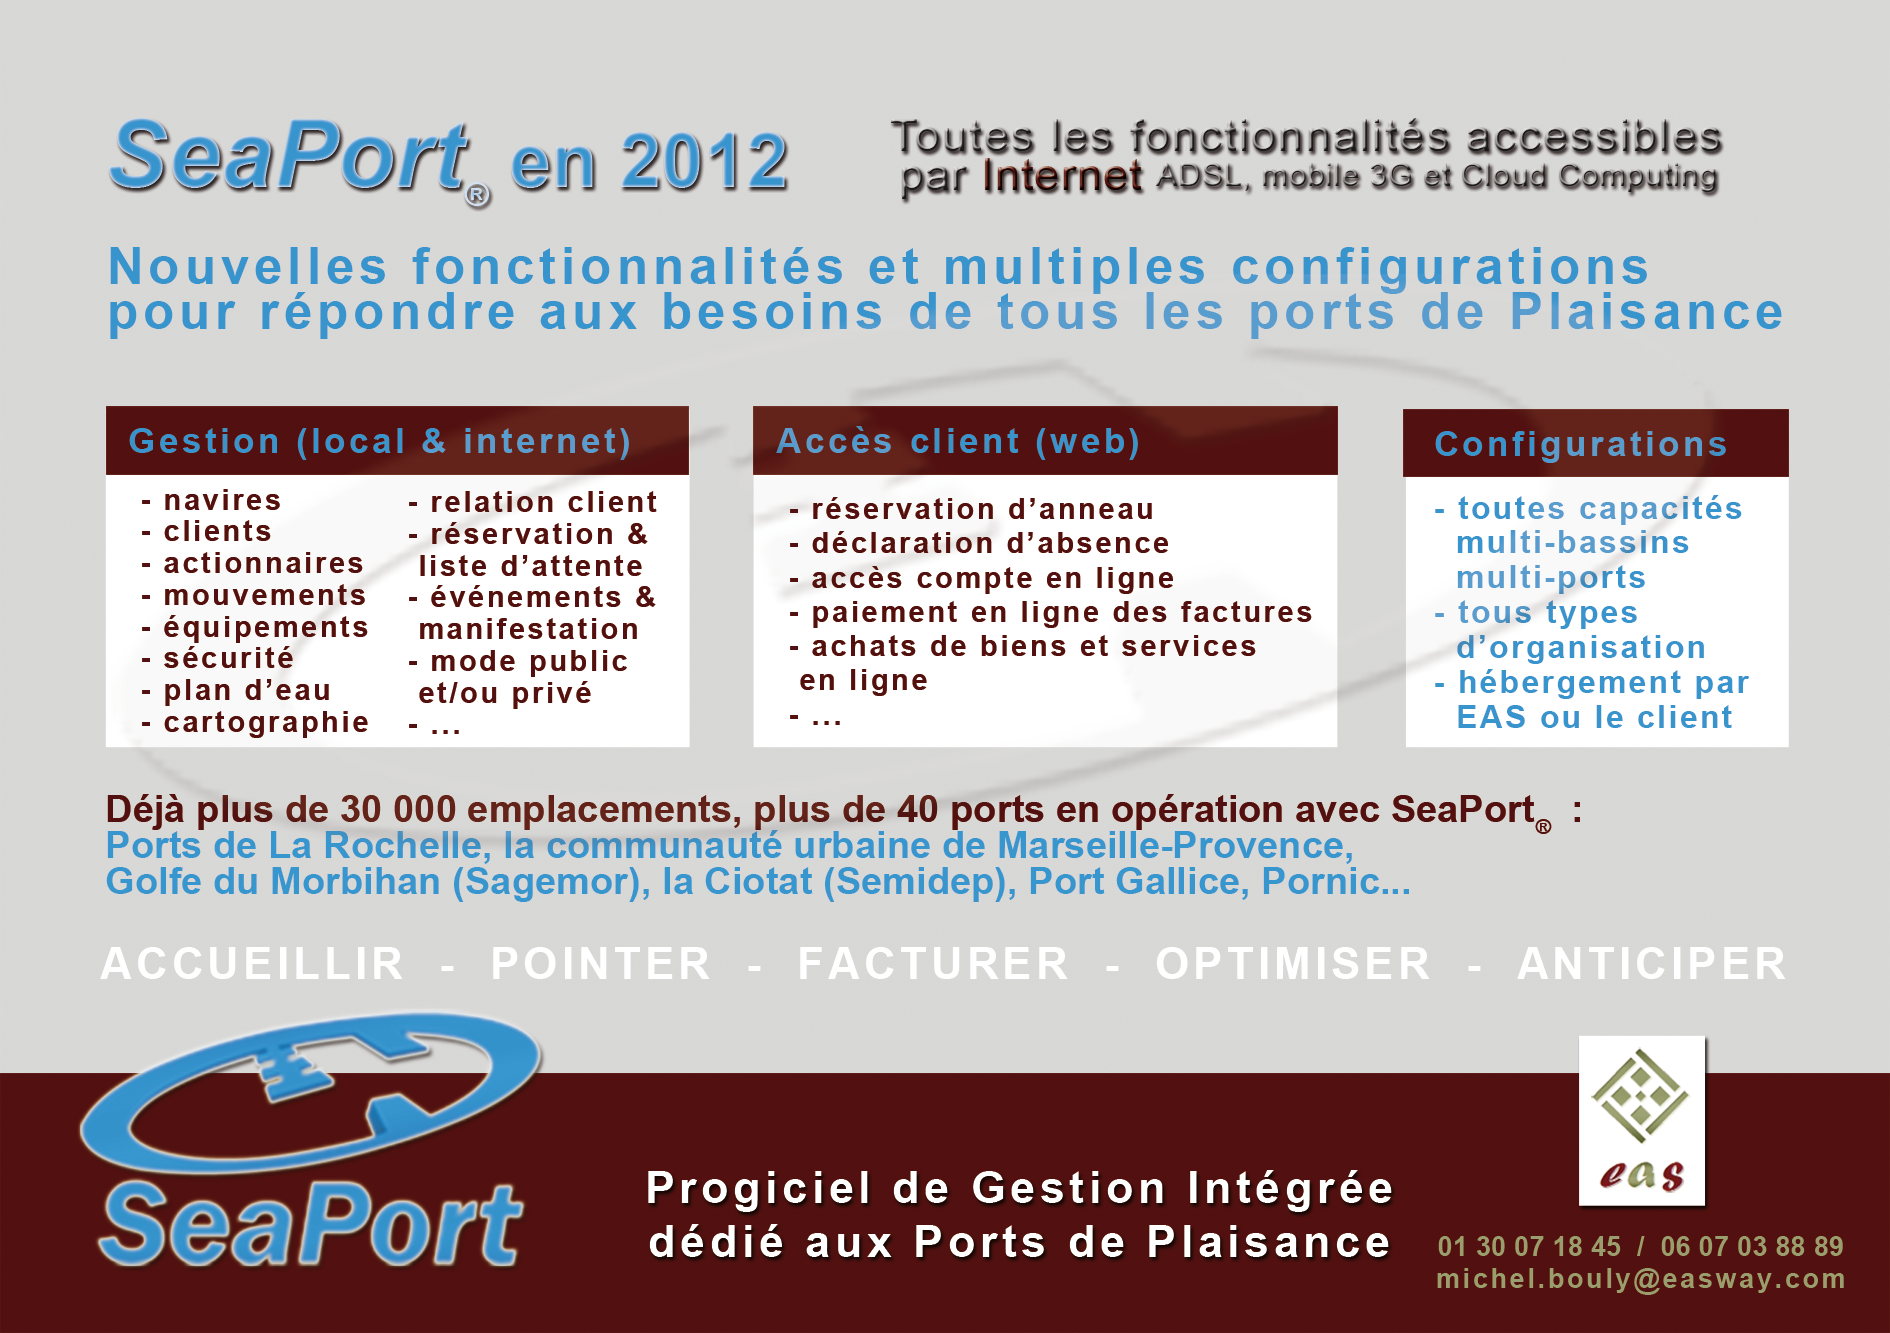 SeaPort sur Internet